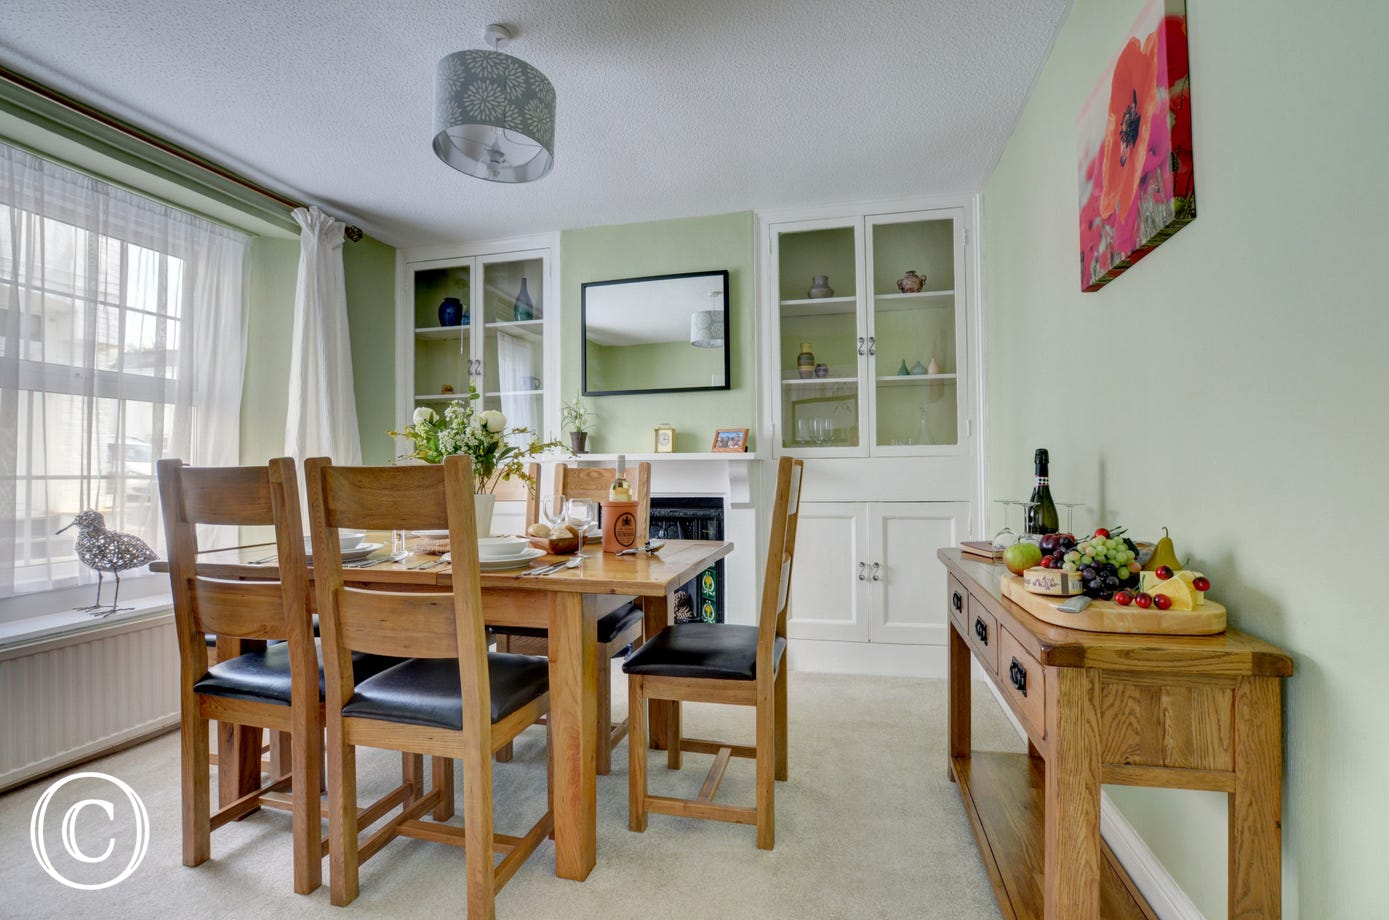 The stylish dining room comfortably seats 6